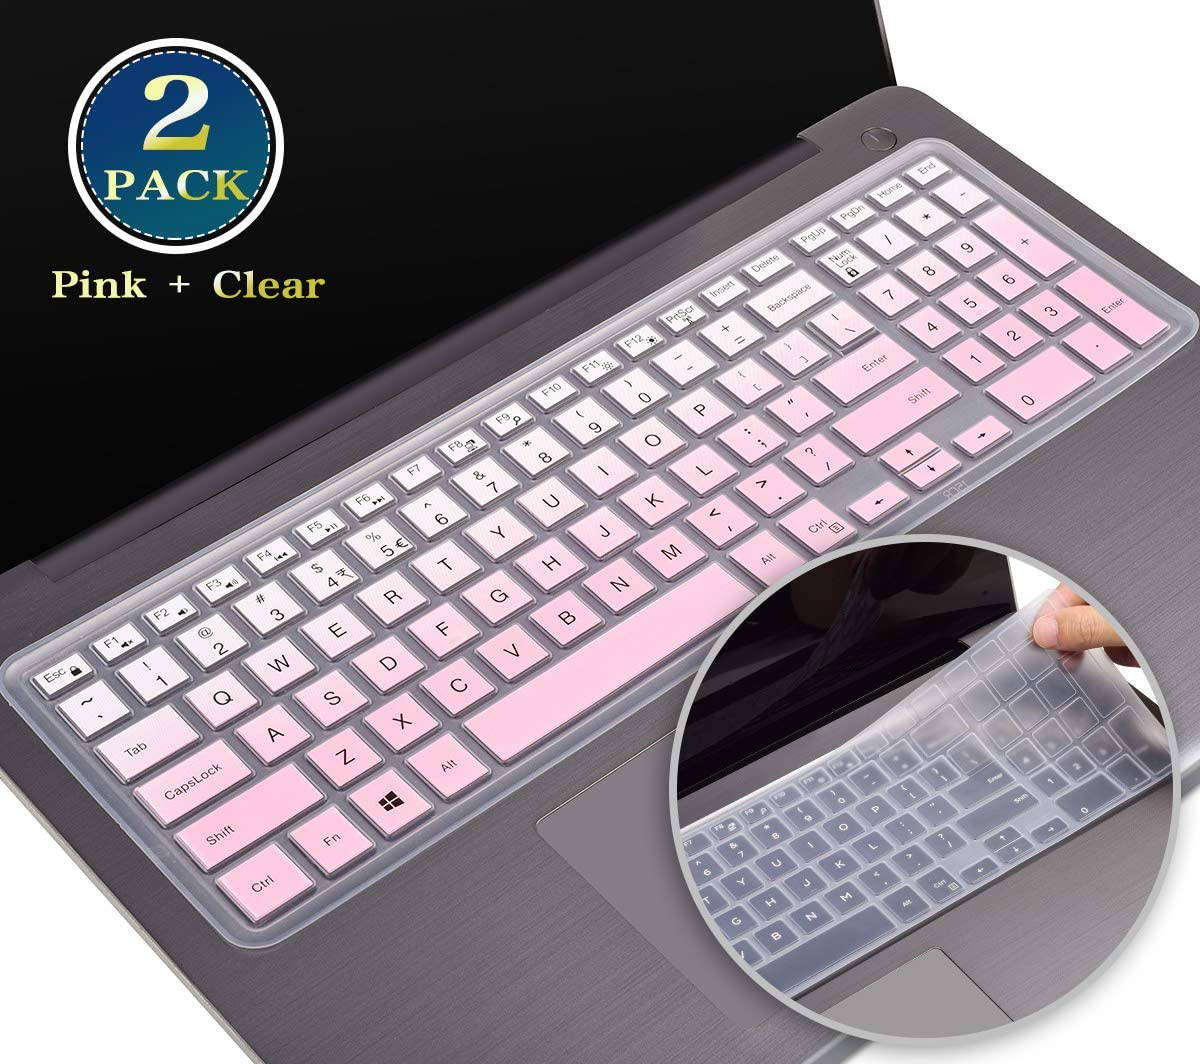 Silicone Keyboard Cover Skin for Dell G3 G5 G7 15.6 Inch Series, Dell G3 G7 17 Series, Dell Inspiron 15 3000 5000 Series, Dell Inspiron 17 5000/New Dell Inspiron 17 3000 Series Protector(Pink+Clear)